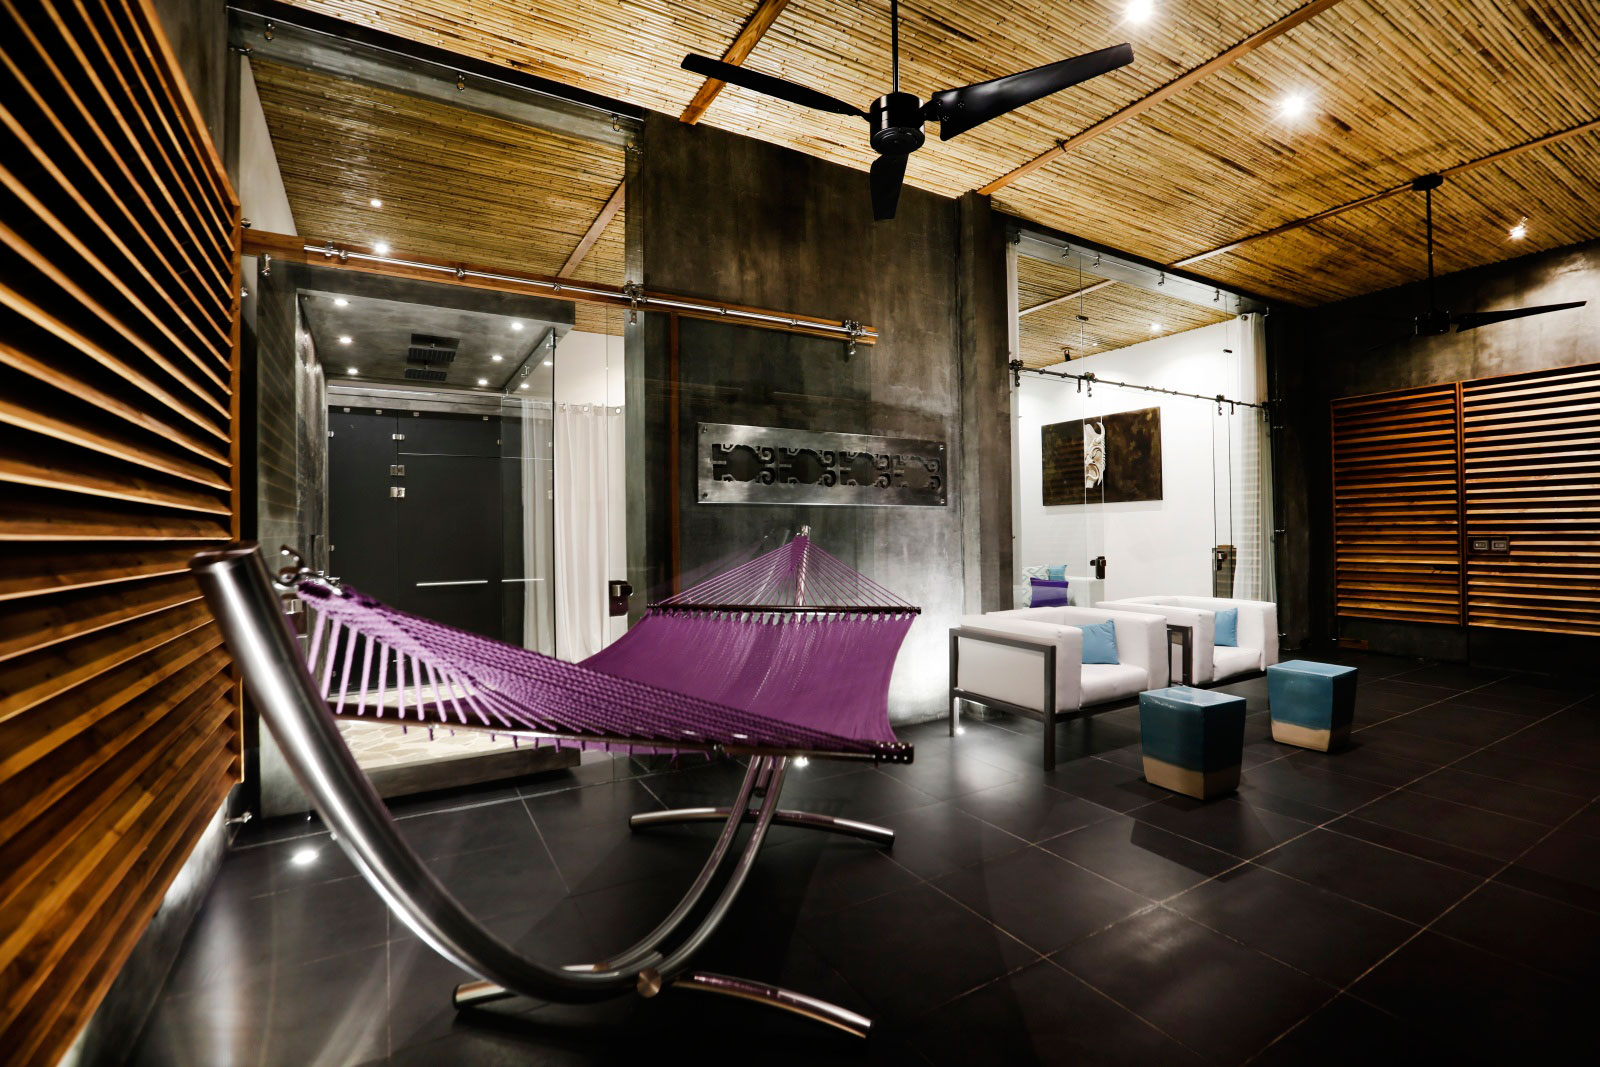 Living Space, Wooden Walls & Ceiling, Dark Floor Tiles, Living Space, Holiday Villas in Costa Rica